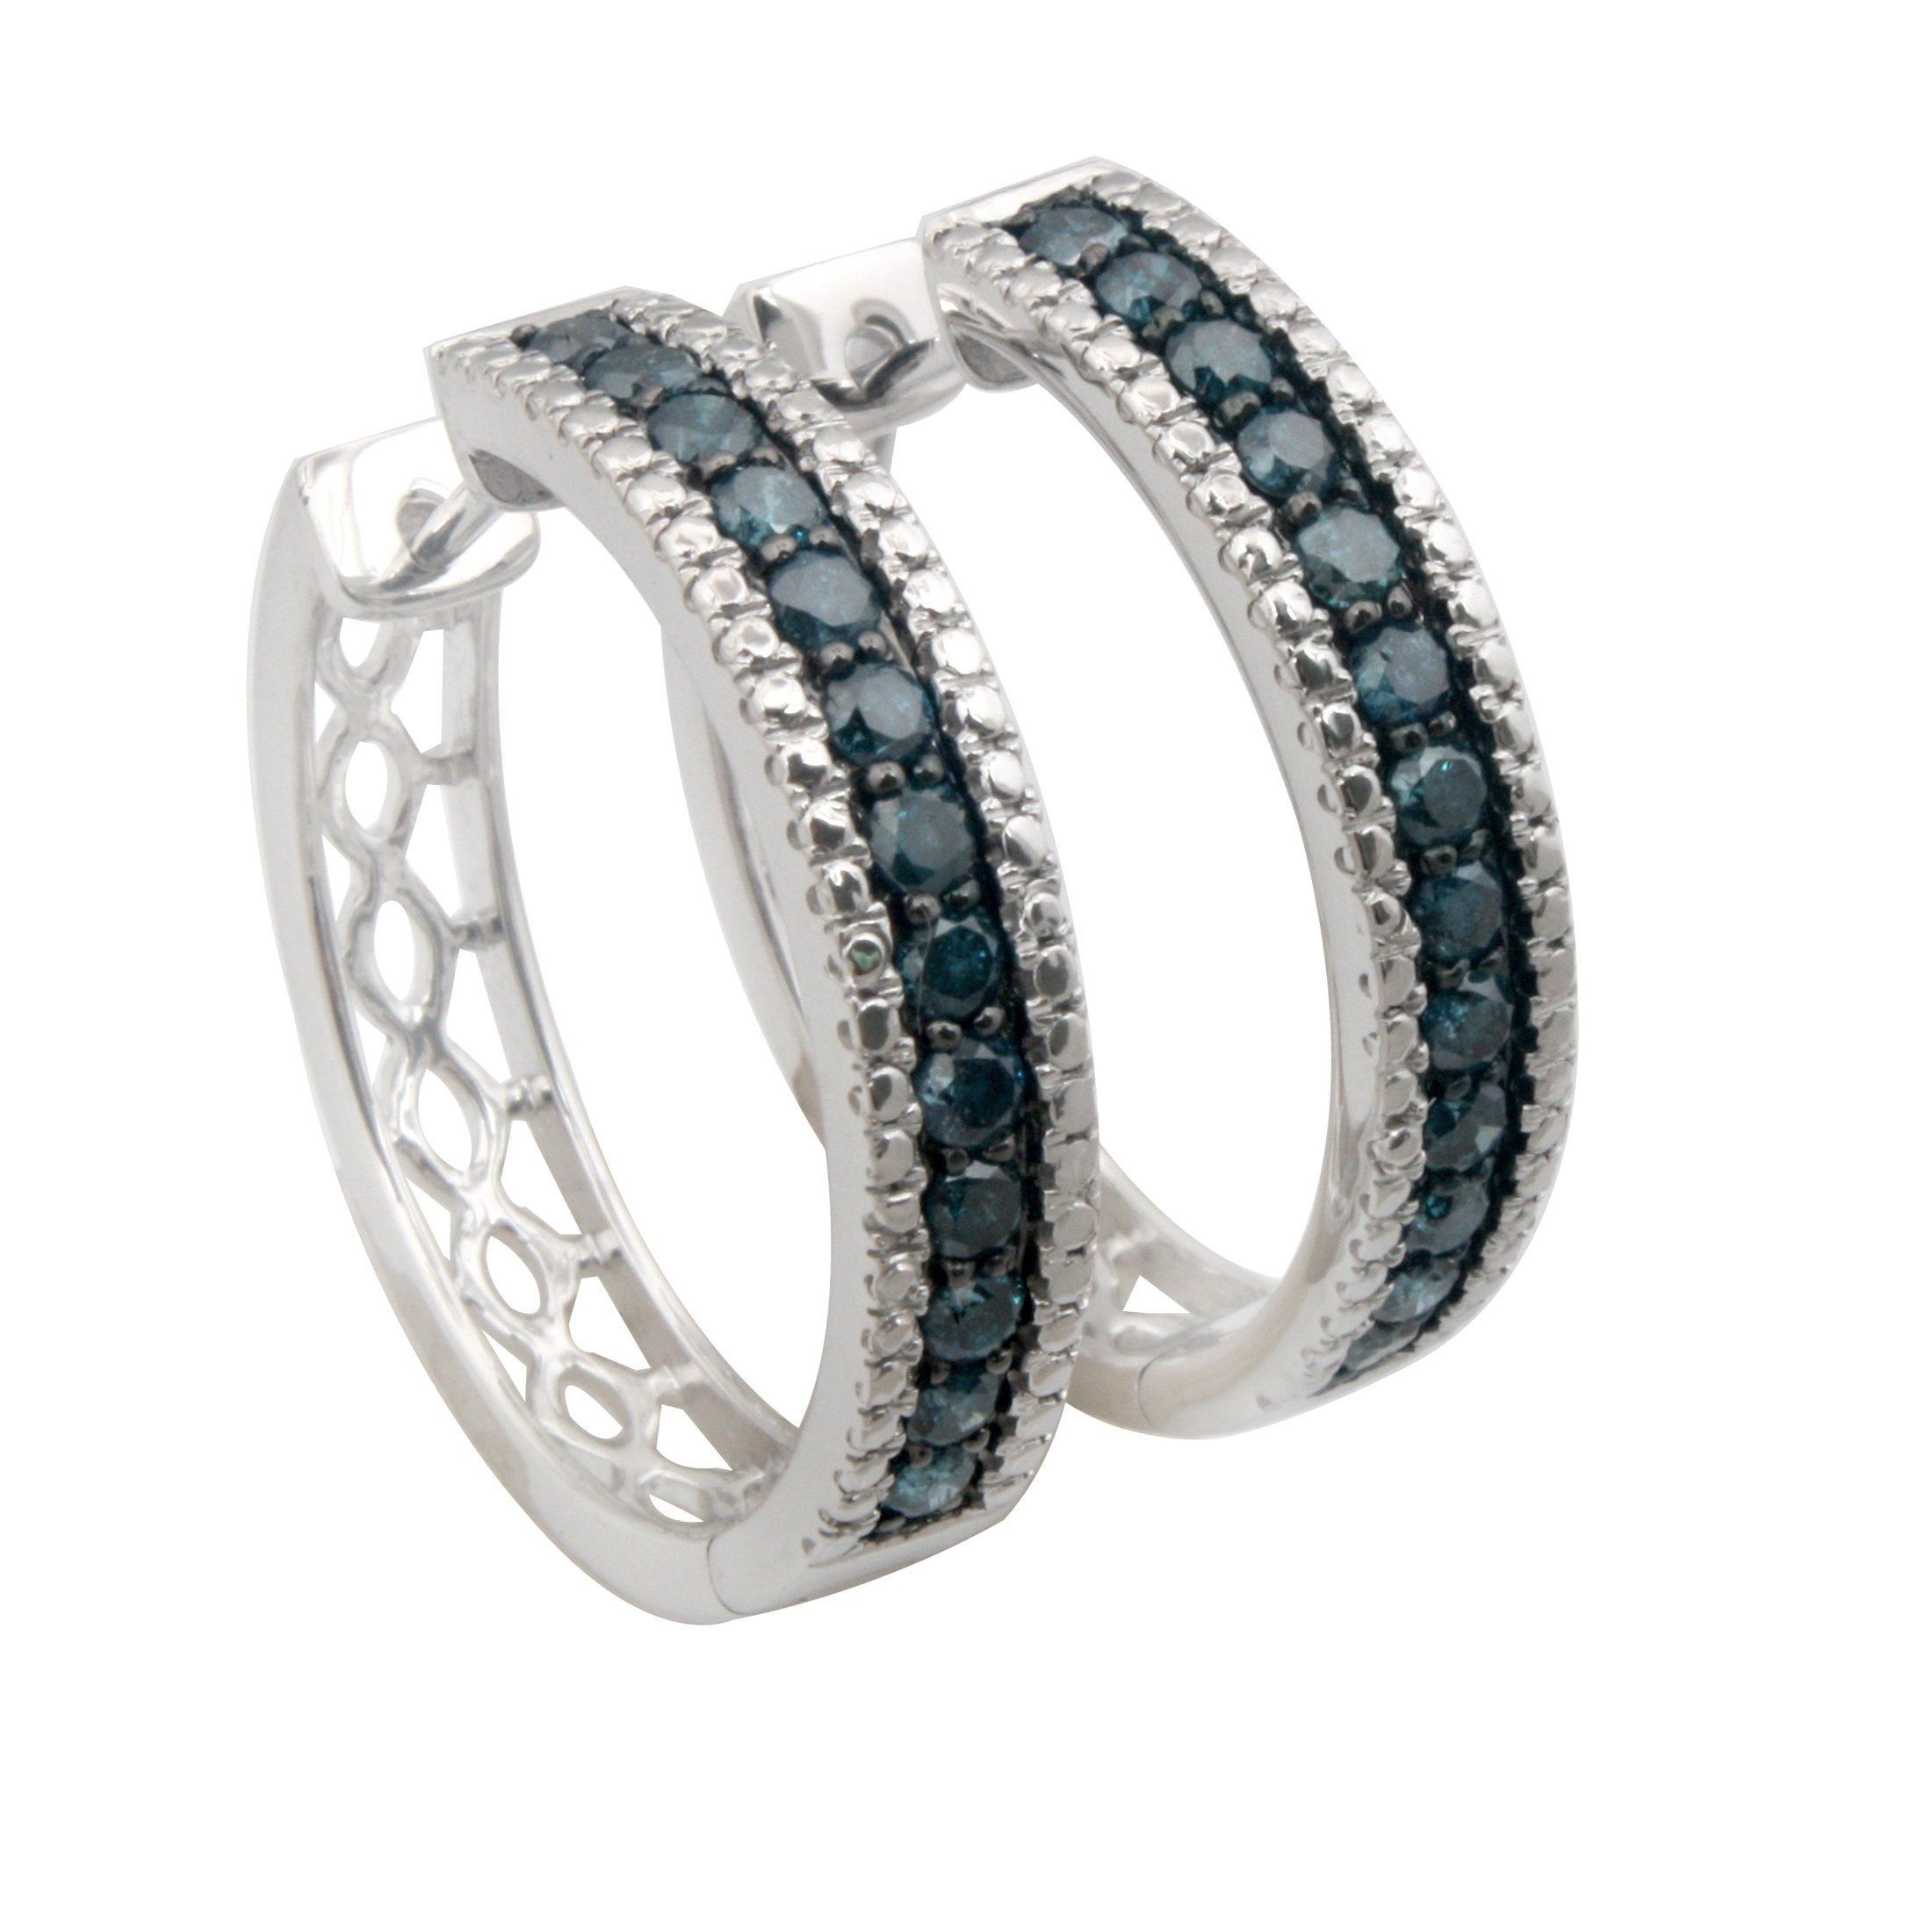 Brand New 1.00 Carat Round Brilliant Cut Blue Diamond Hinge with notched post Hoop Earring, 10k White Gold